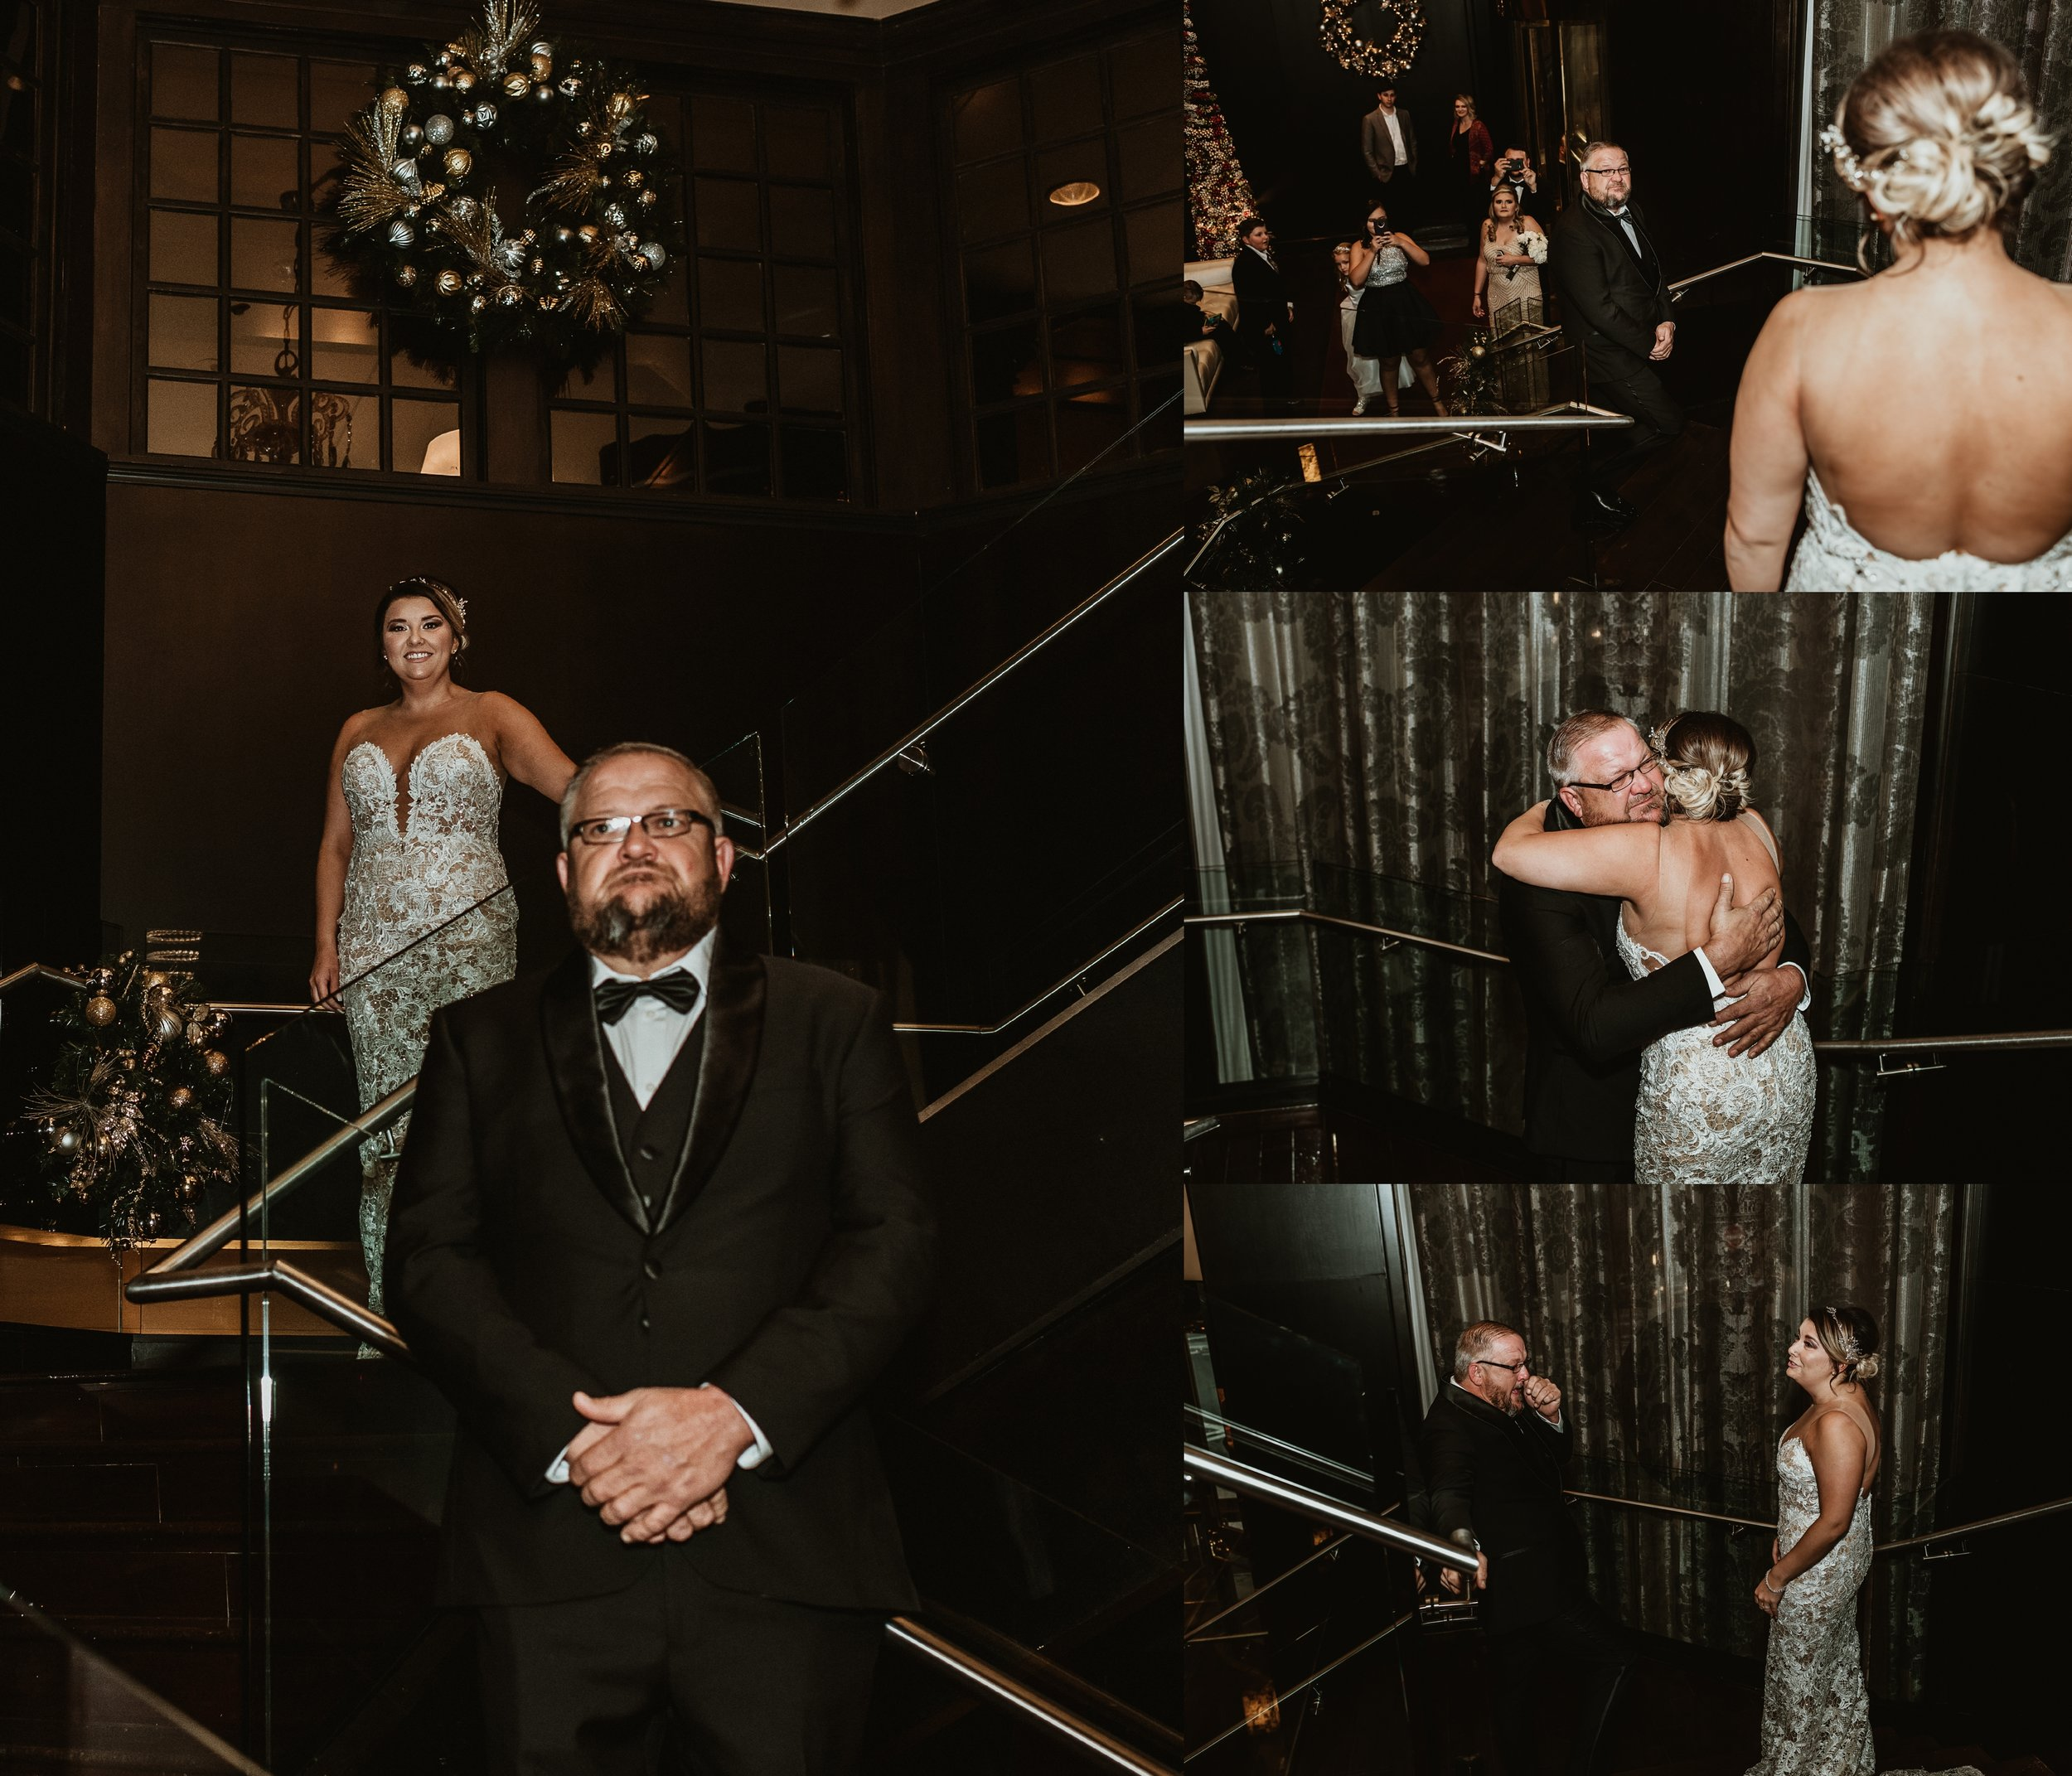 Classic Vintage Wedding | Ritz Carlton Atlanta, Georgia | Terry Farms Photography | Wedding Father First Look